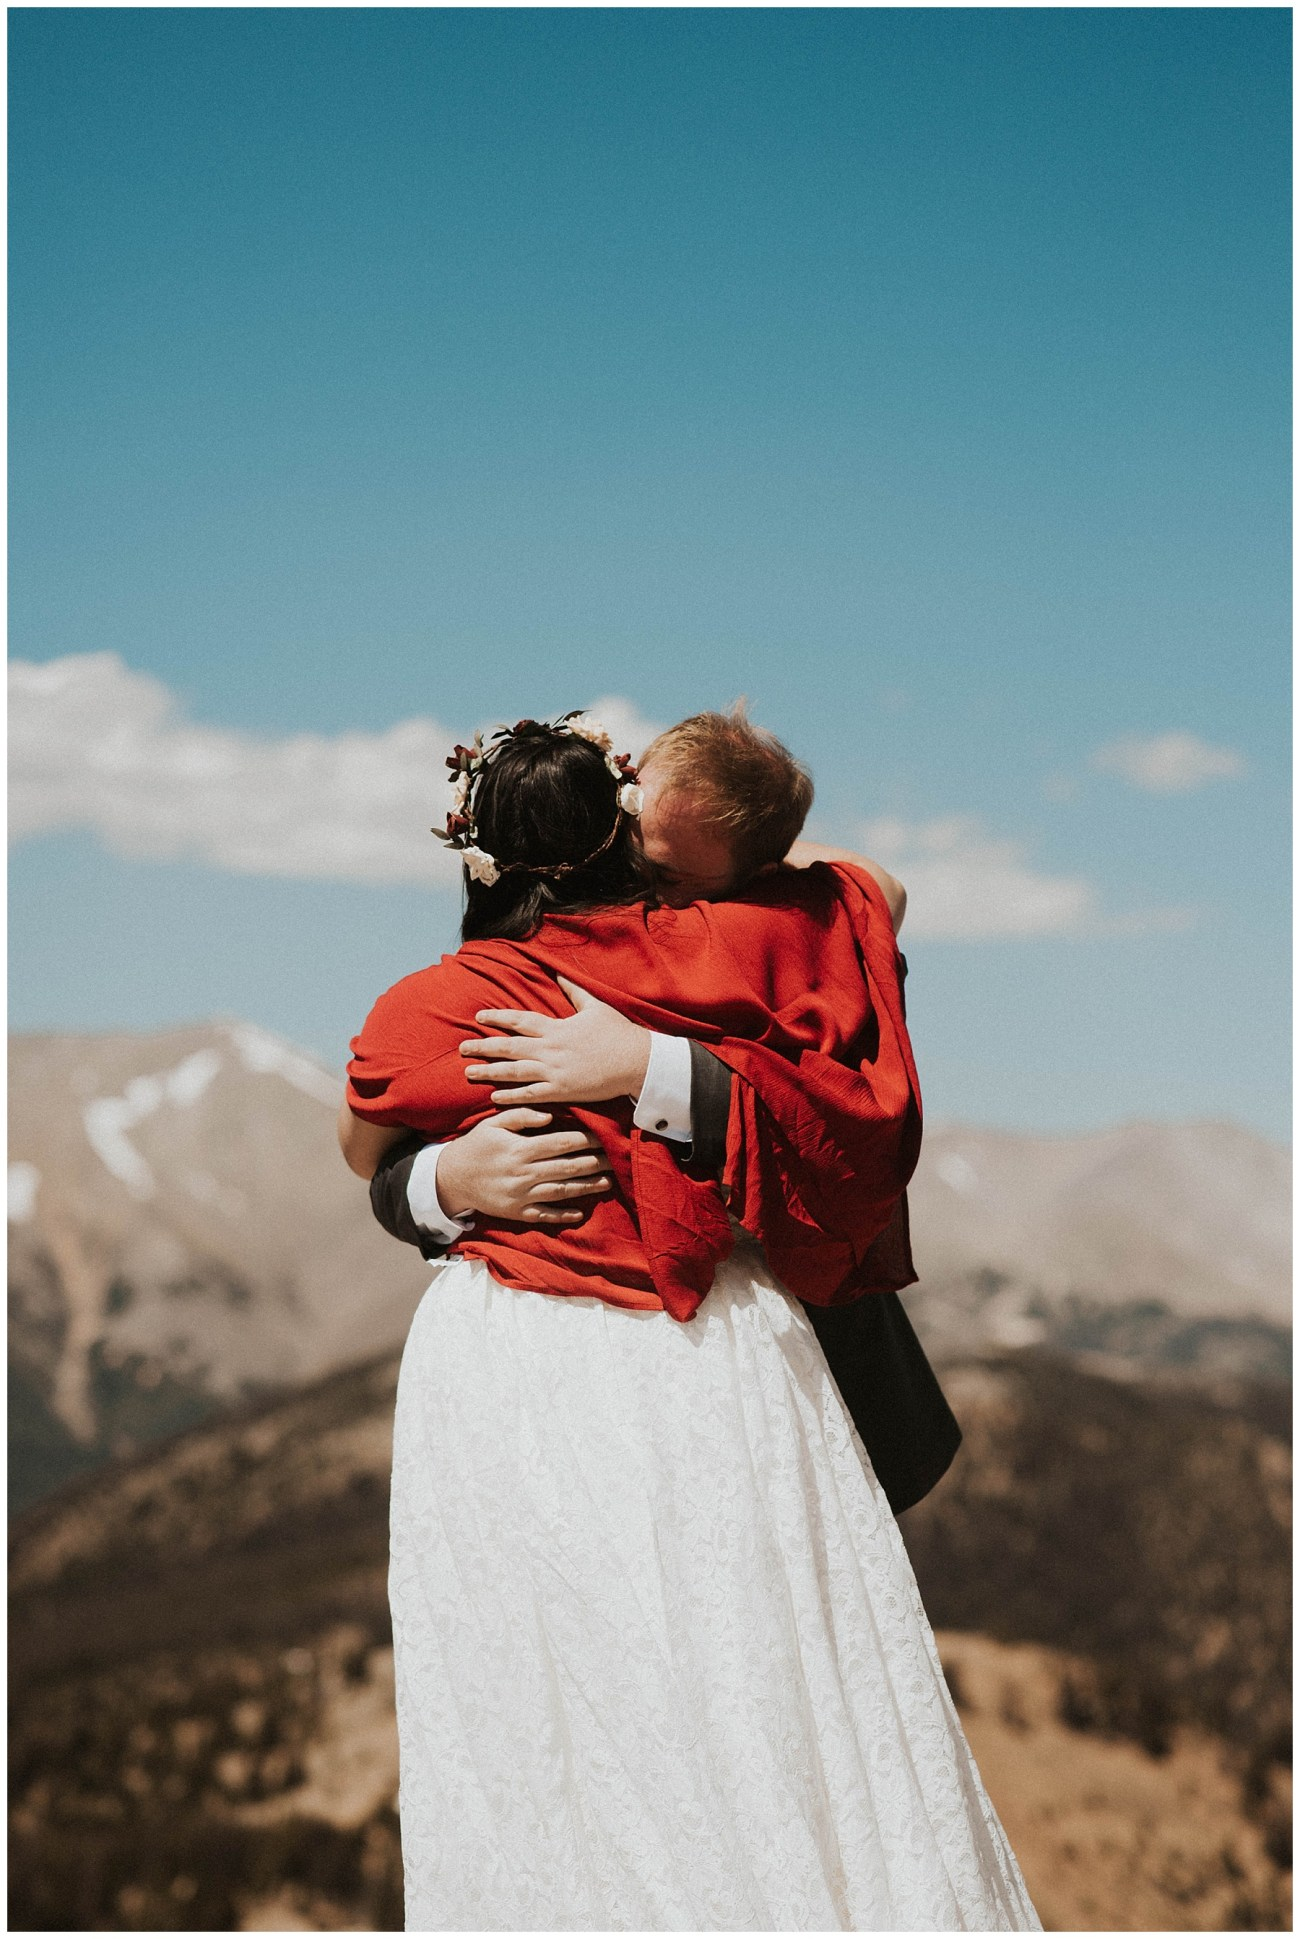 2860558c6fe Ben + Lainee // Desert Colorado Wedding - Lauren F.otography ...